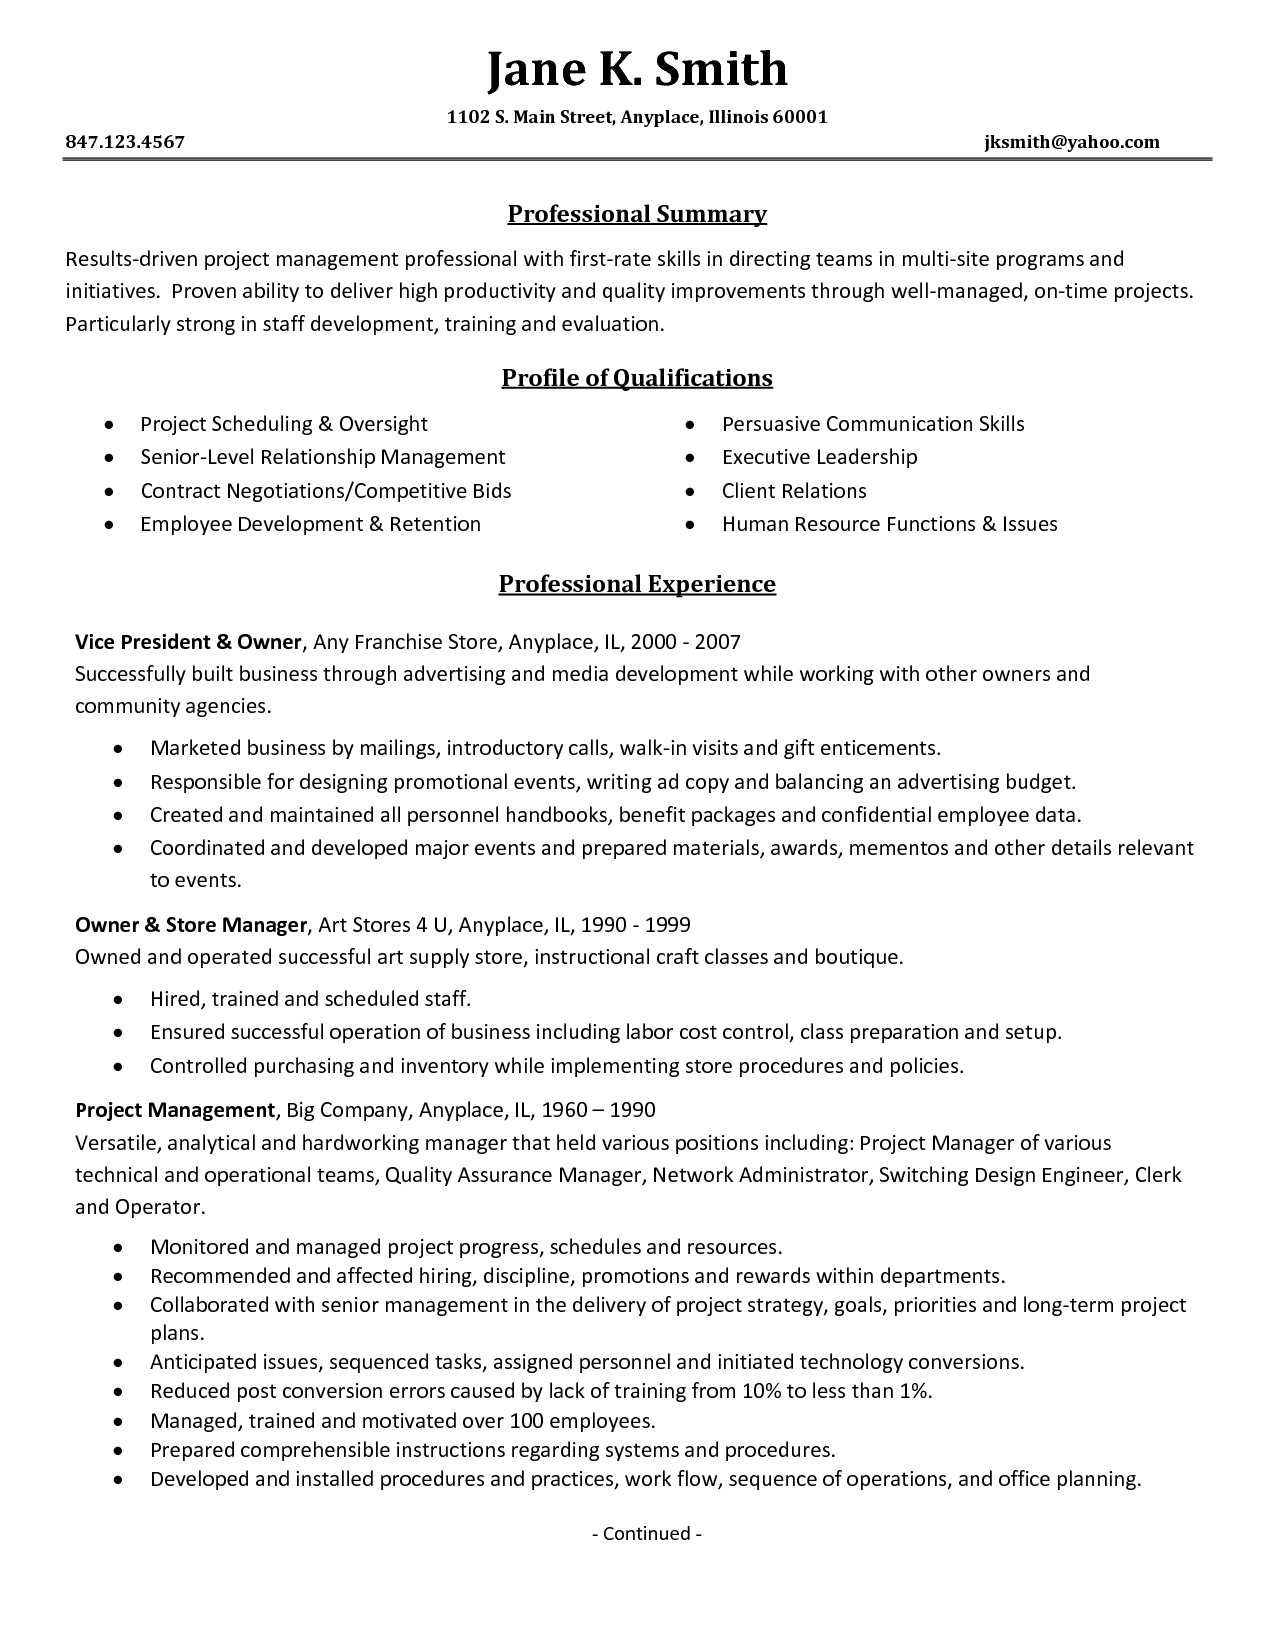 Resume Examples Skills Cool Leadership Skills Resume Leadership Skills Resume Template…  Job Inspiration